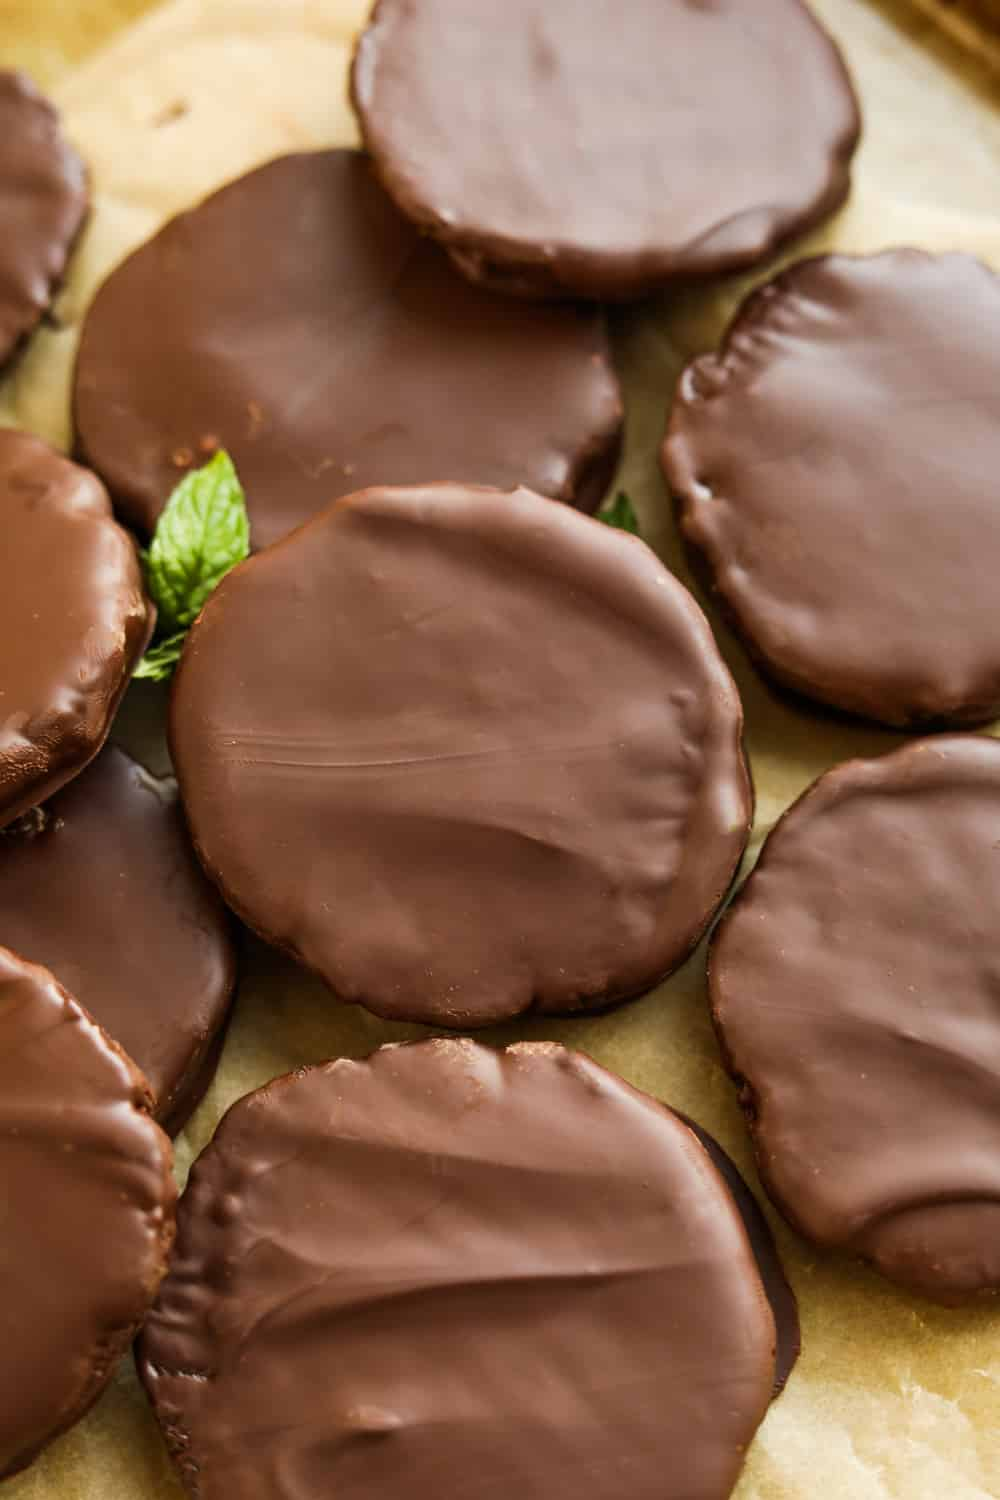 Chocolate coated cookies stacked on top of one another on a piece of brown parchment paper with a mint leaf next to them.